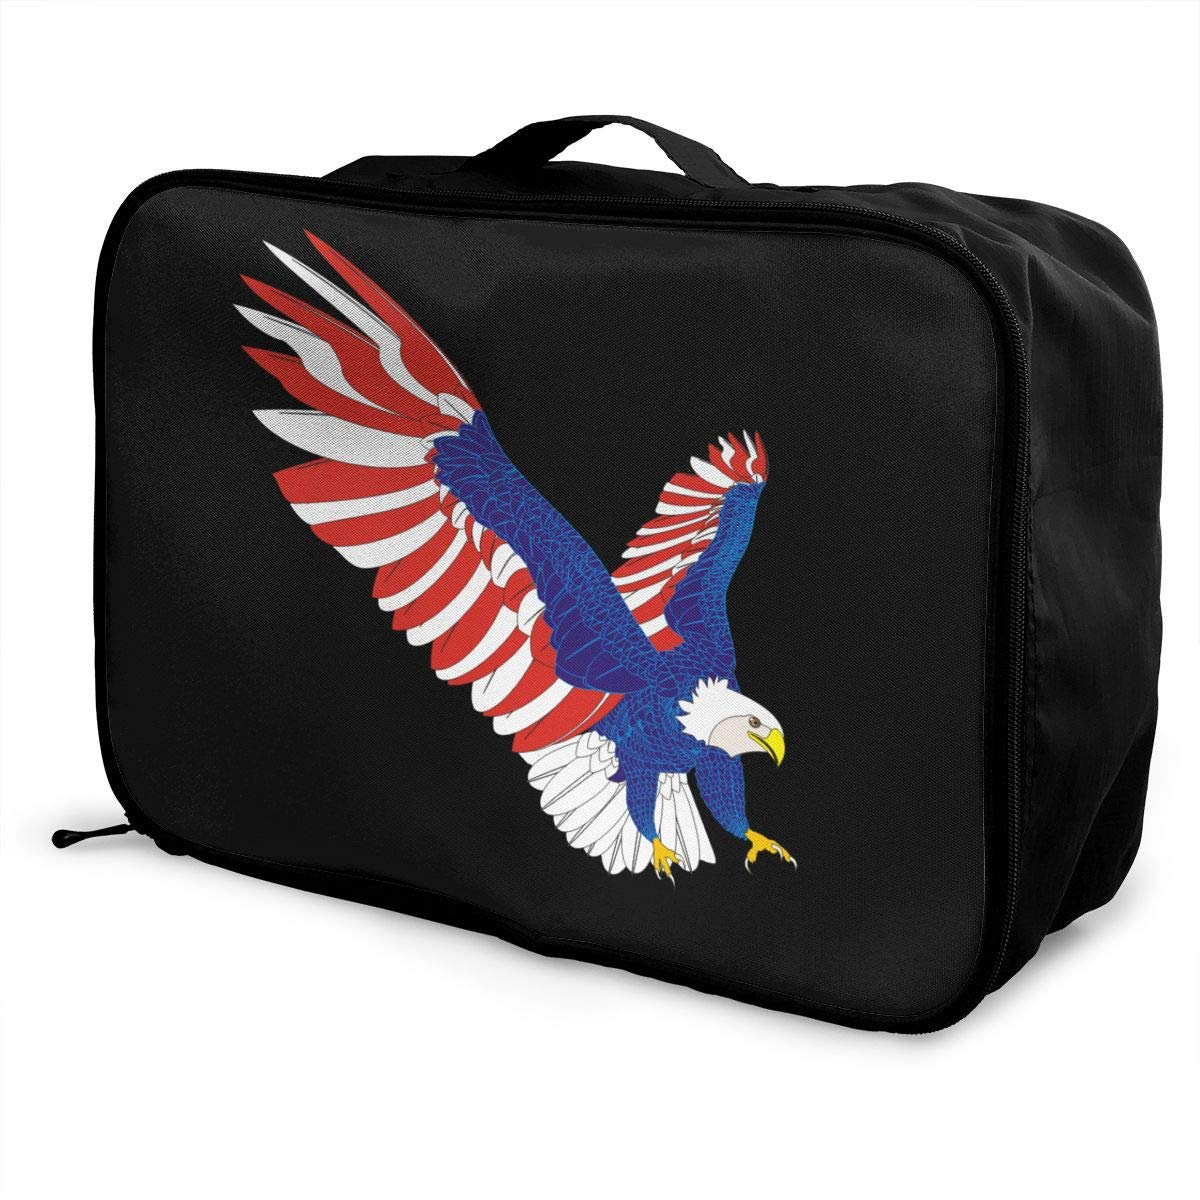 YueLJB American Eagle Lightweight Large Capacity Portable Luggage Bag Travel Duffel Bag Storage Carry Luggage Duffle Tote Bag